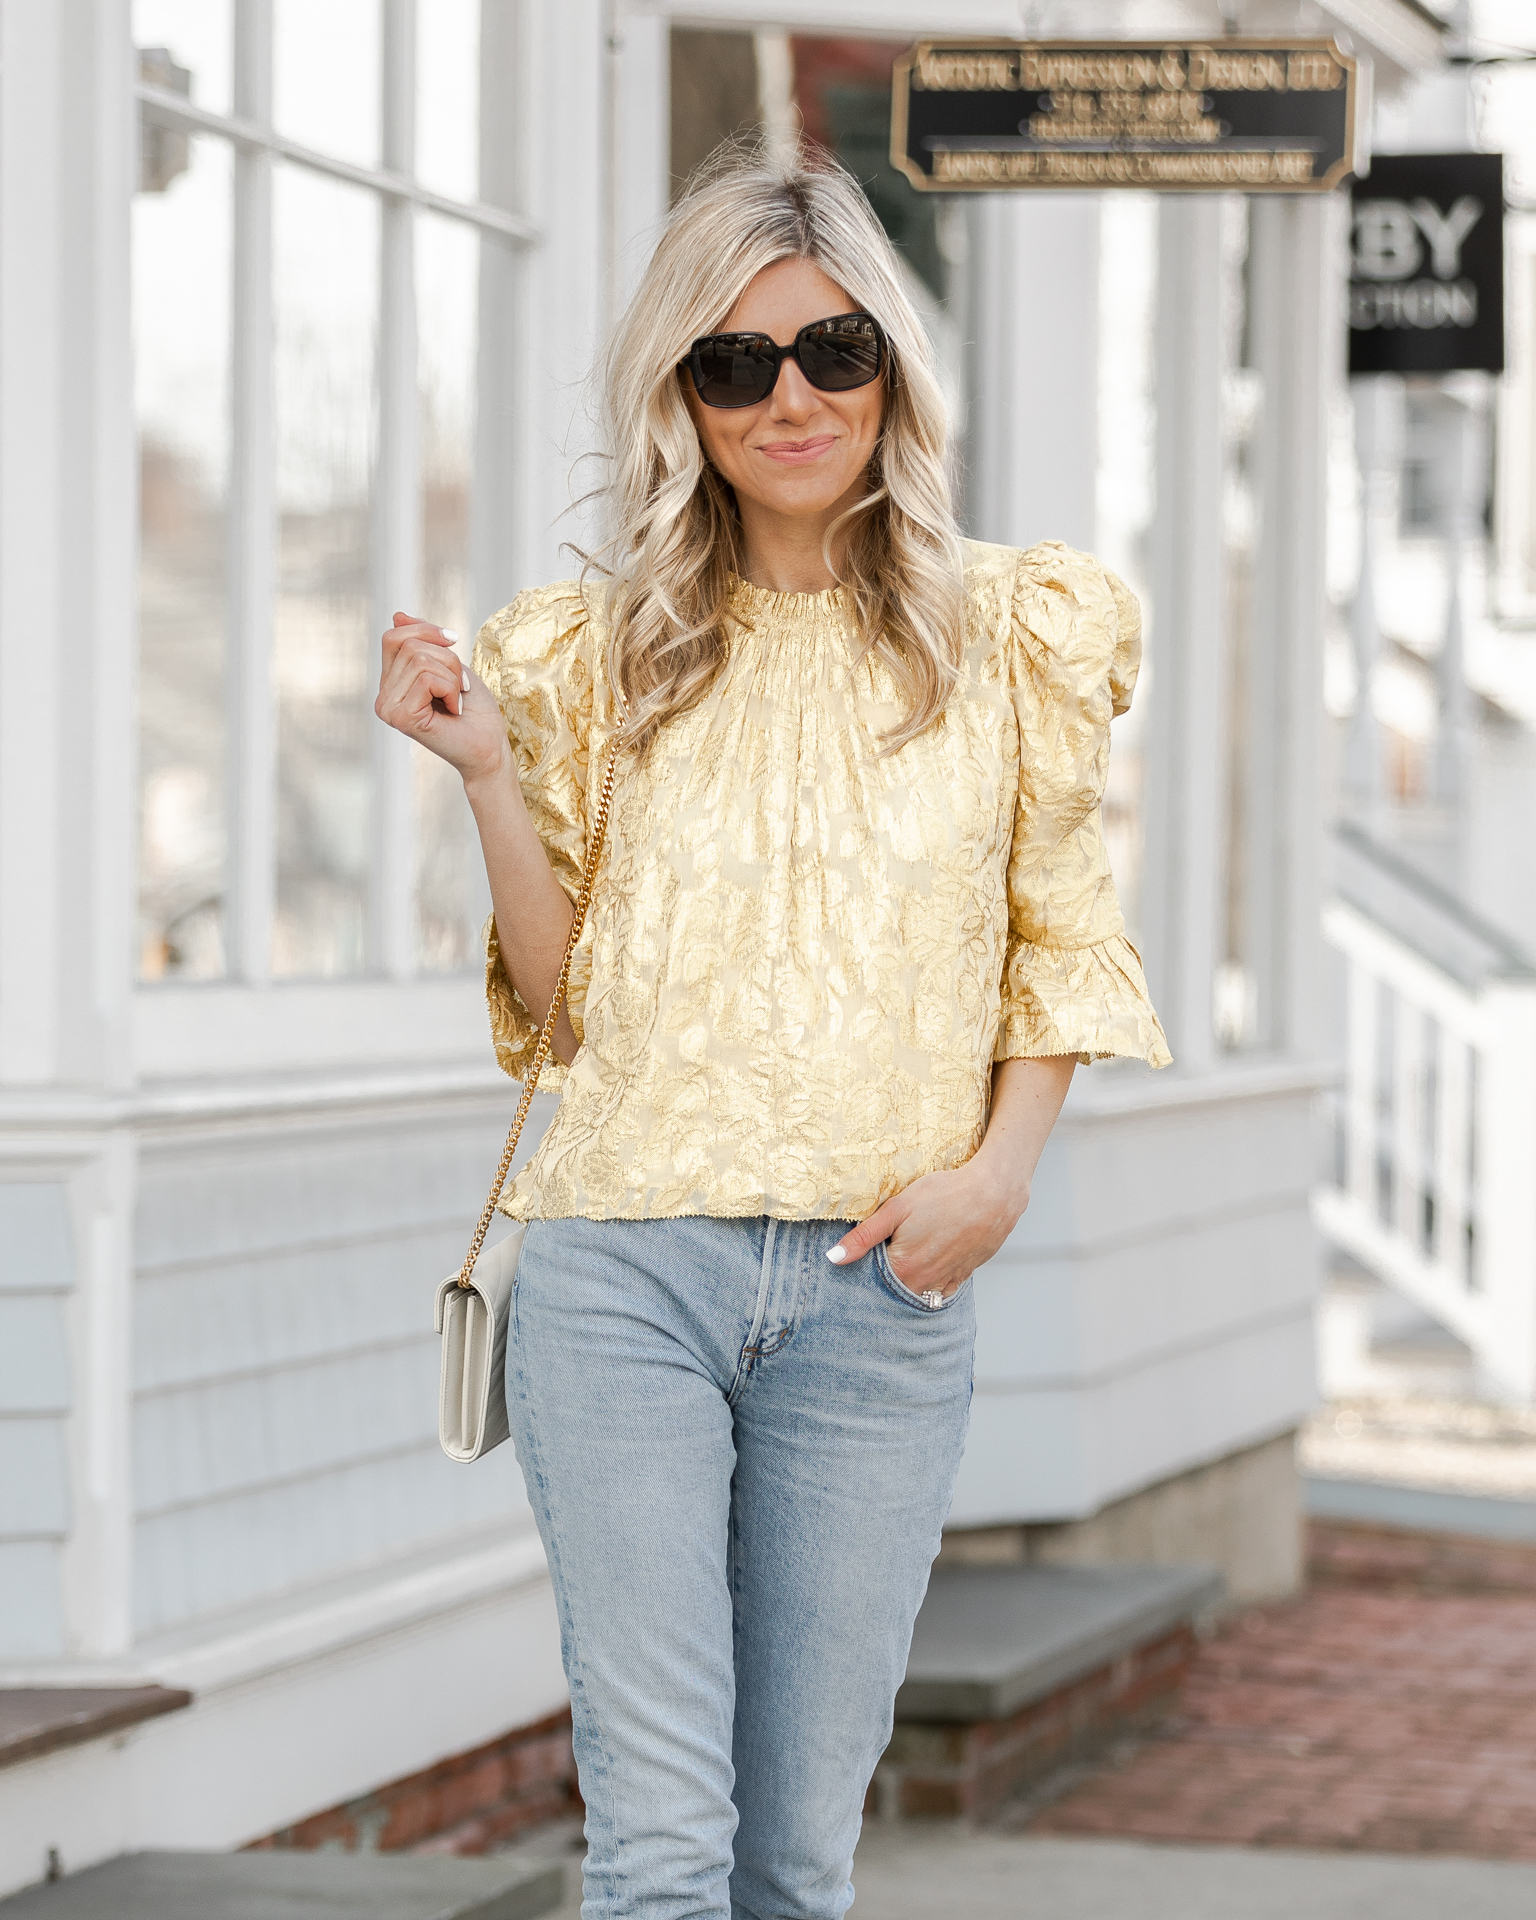 the-perfect-puff-sleeve-top-for-spring-the-glamorous-gal